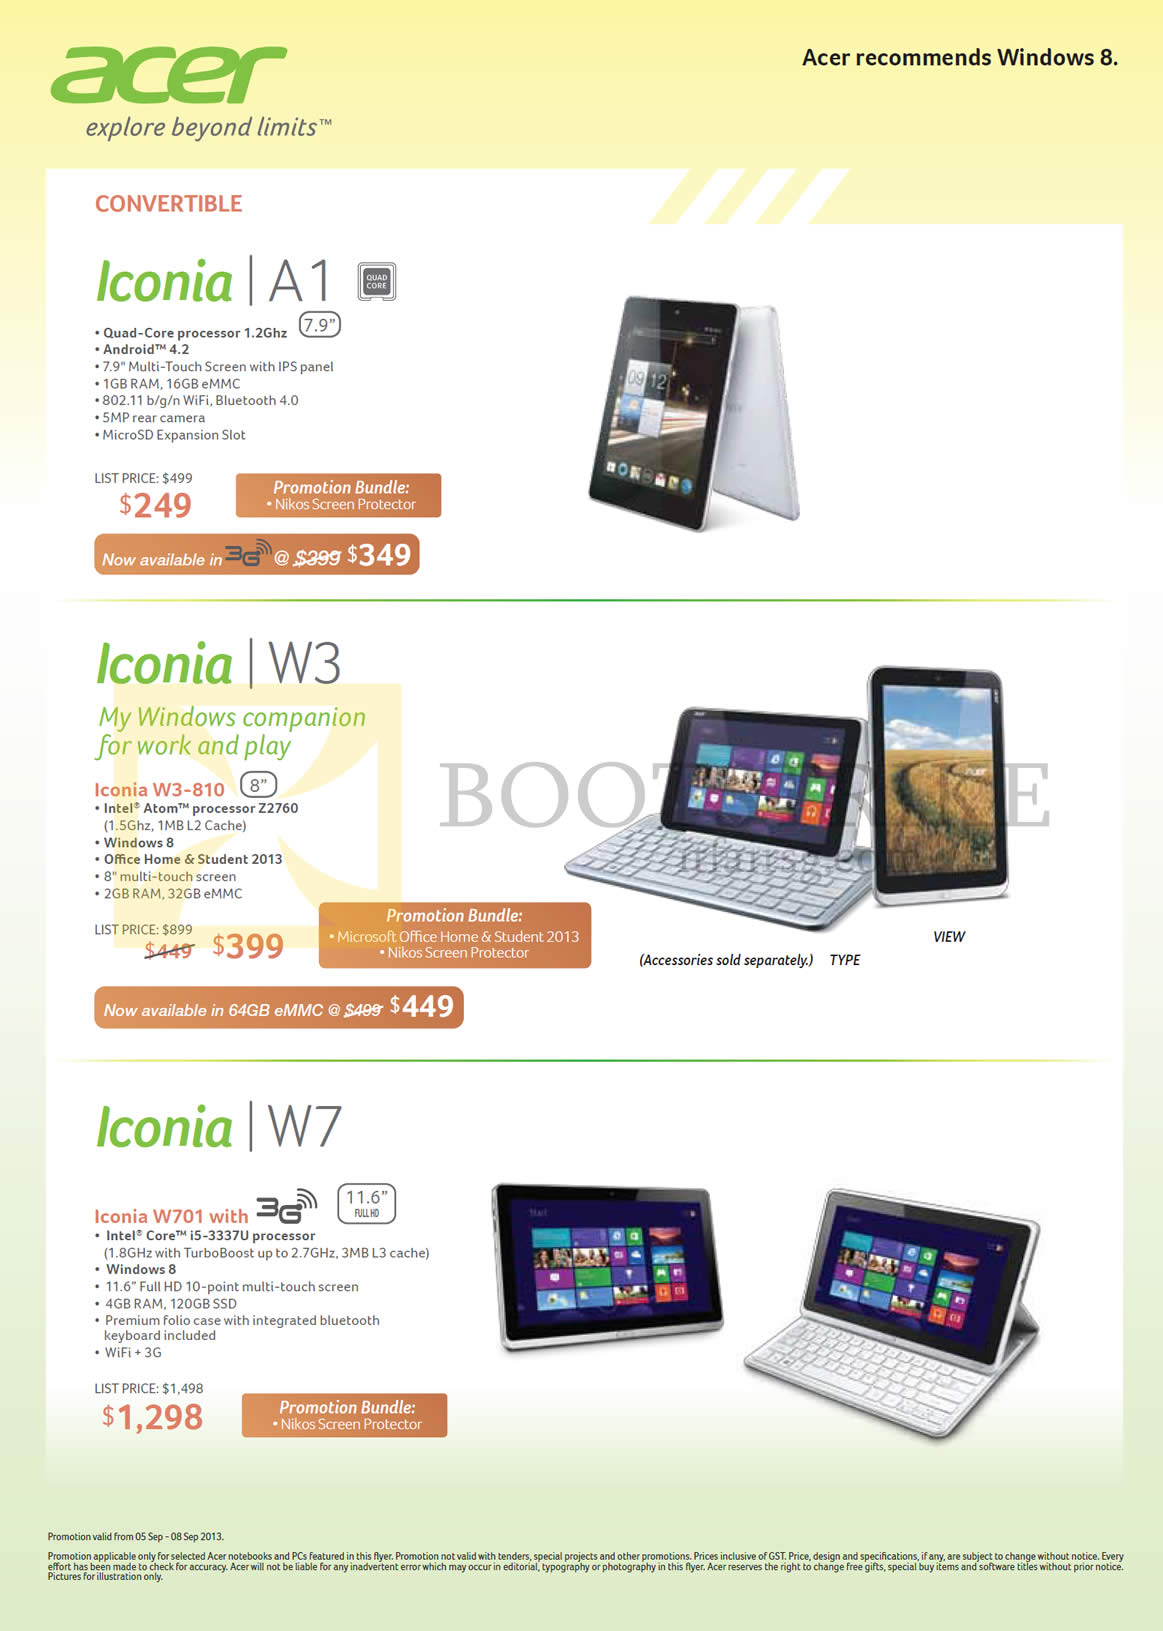 COMEX 2013 price list image brochure of Acer Tablets Iconia W3-810, A1, W701